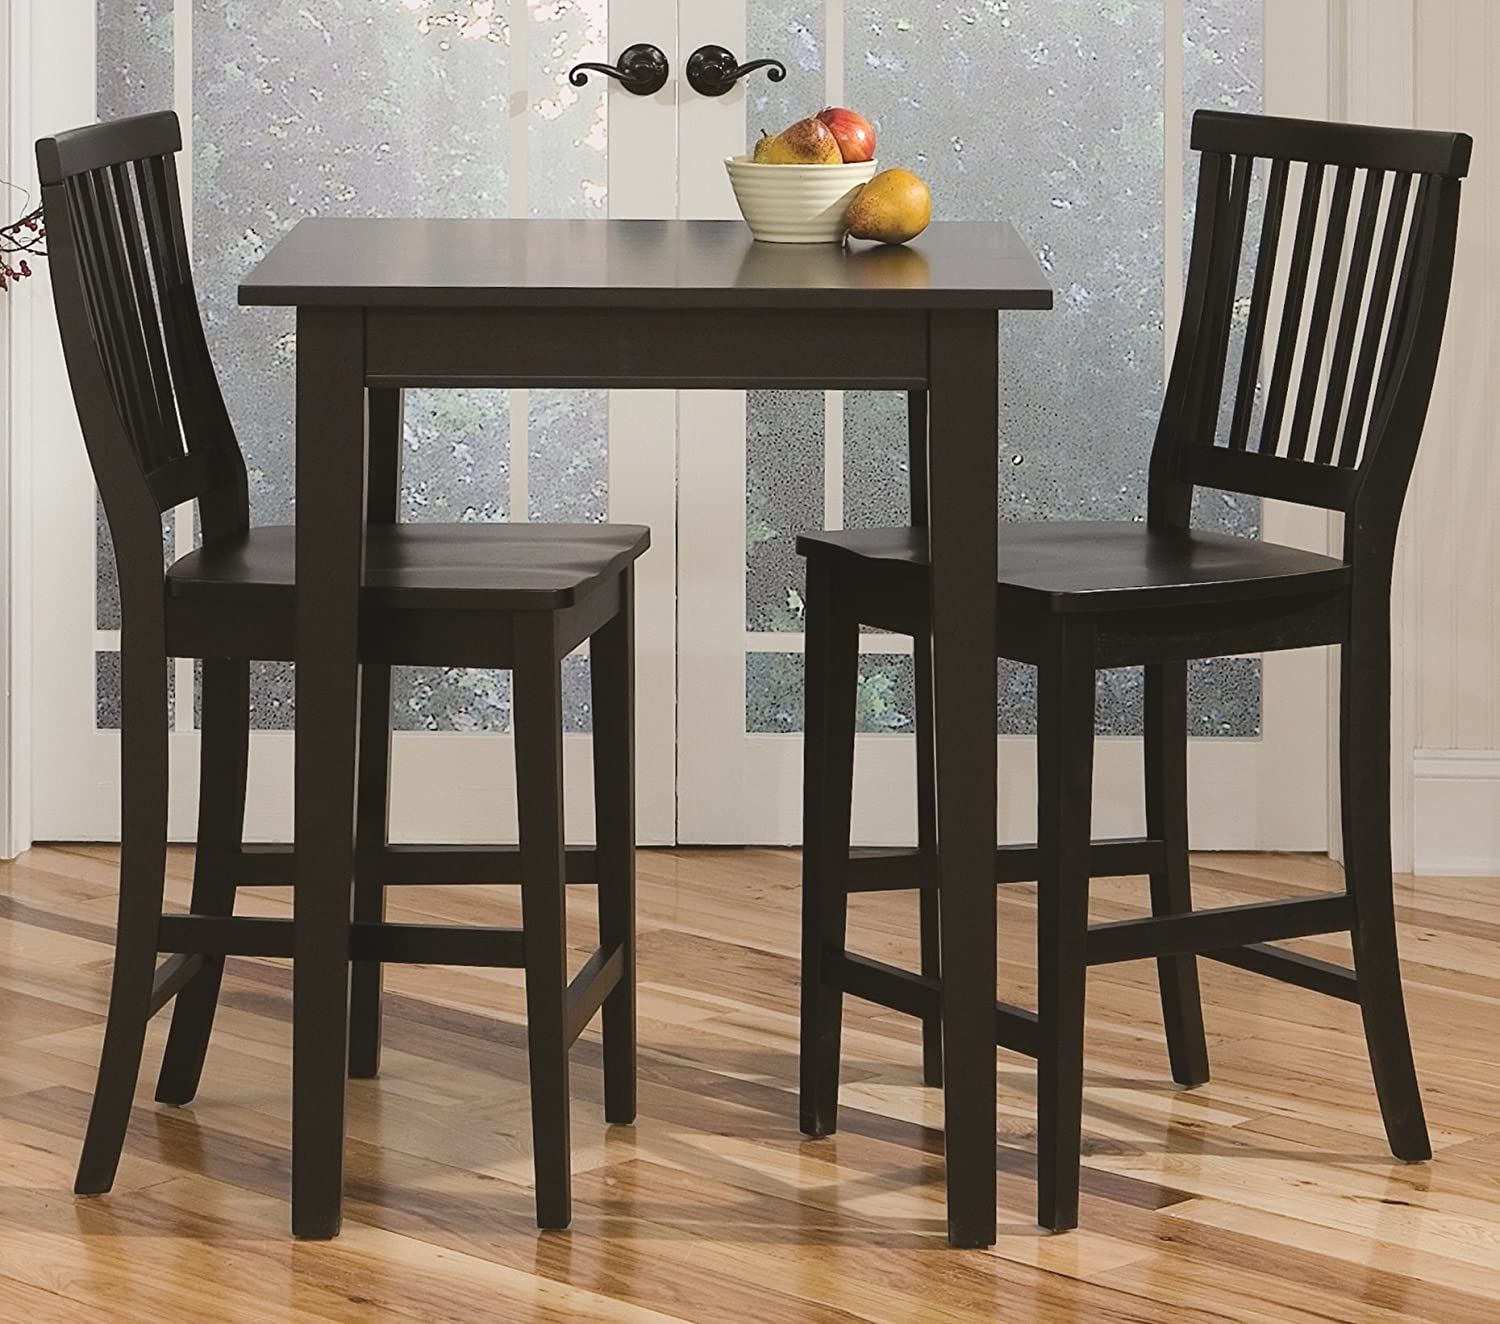 Super Arts And Crafts Black 3 Piece Pub Table And Chairs Stool Set By Home Styles Onthecornerstone Fun Painted Chair Ideas Images Onthecornerstoneorg